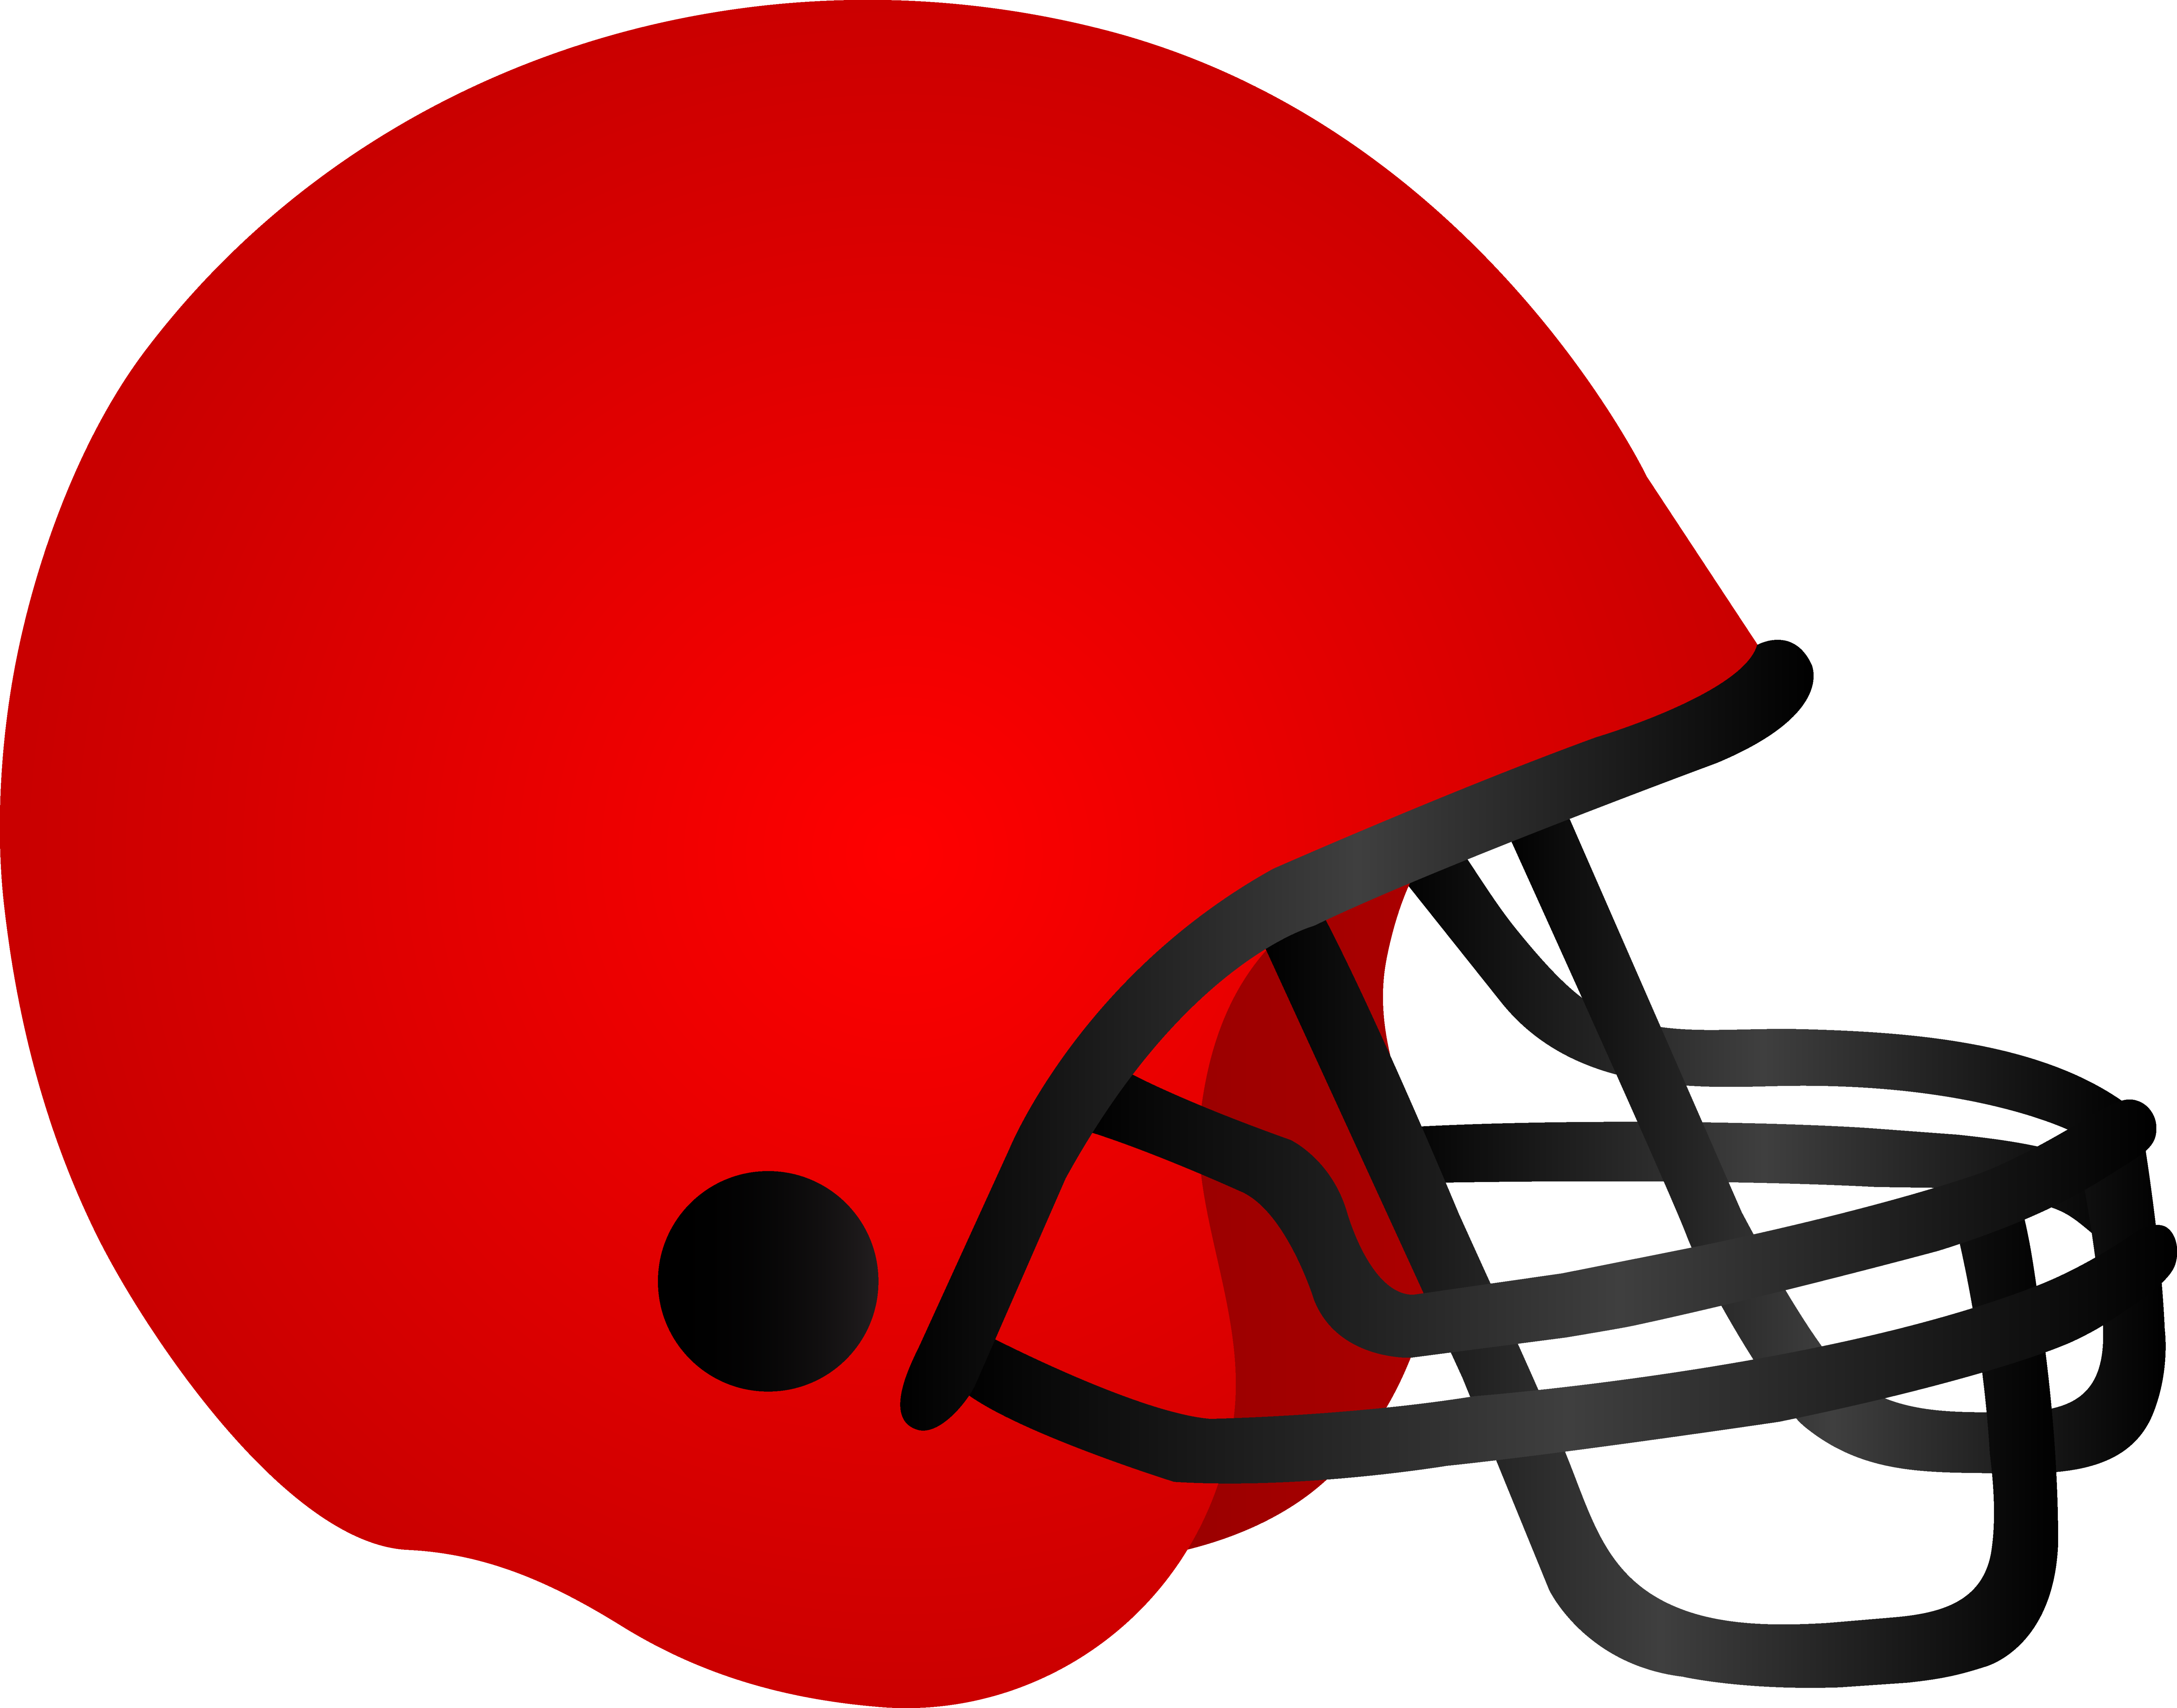 Football with heart clipart jpg library library Football outline clipart red and blue jpg library library